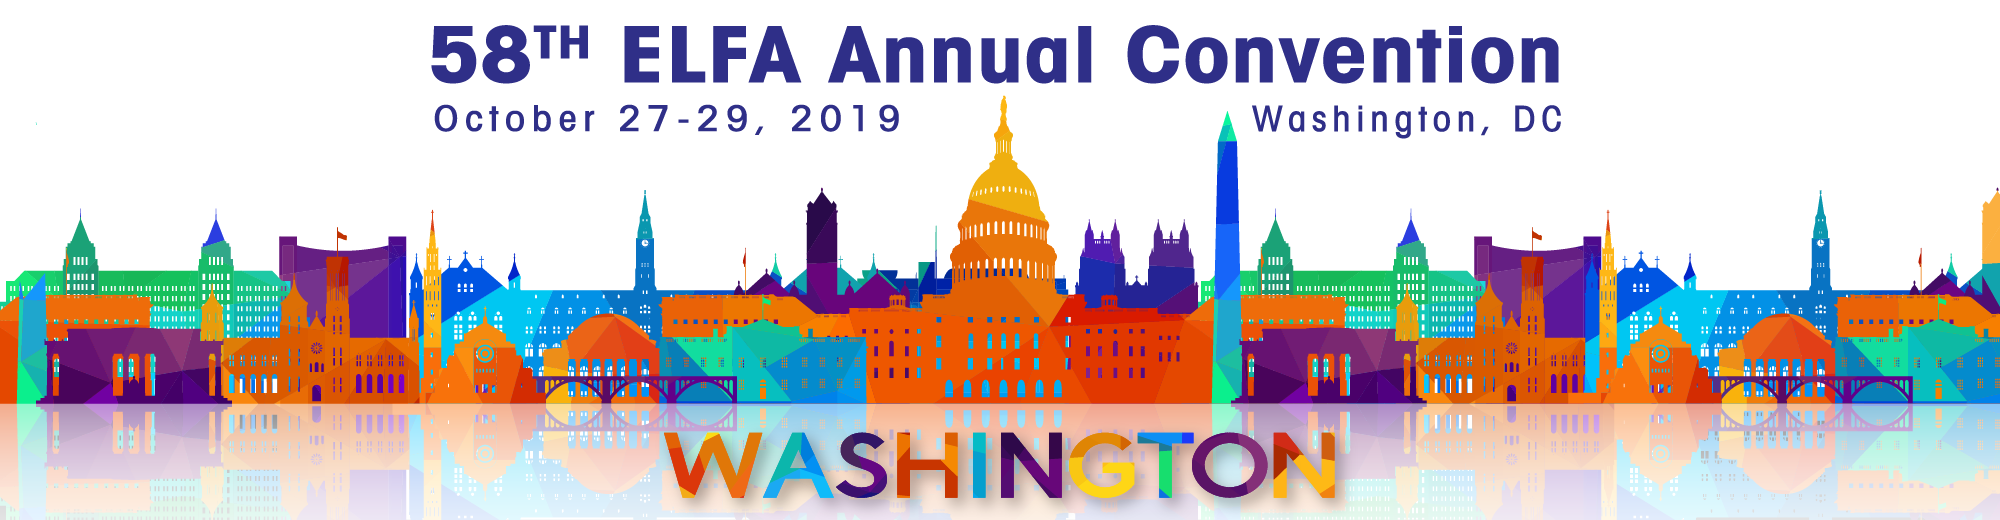 ELFA 58th Annual Convention: Washington